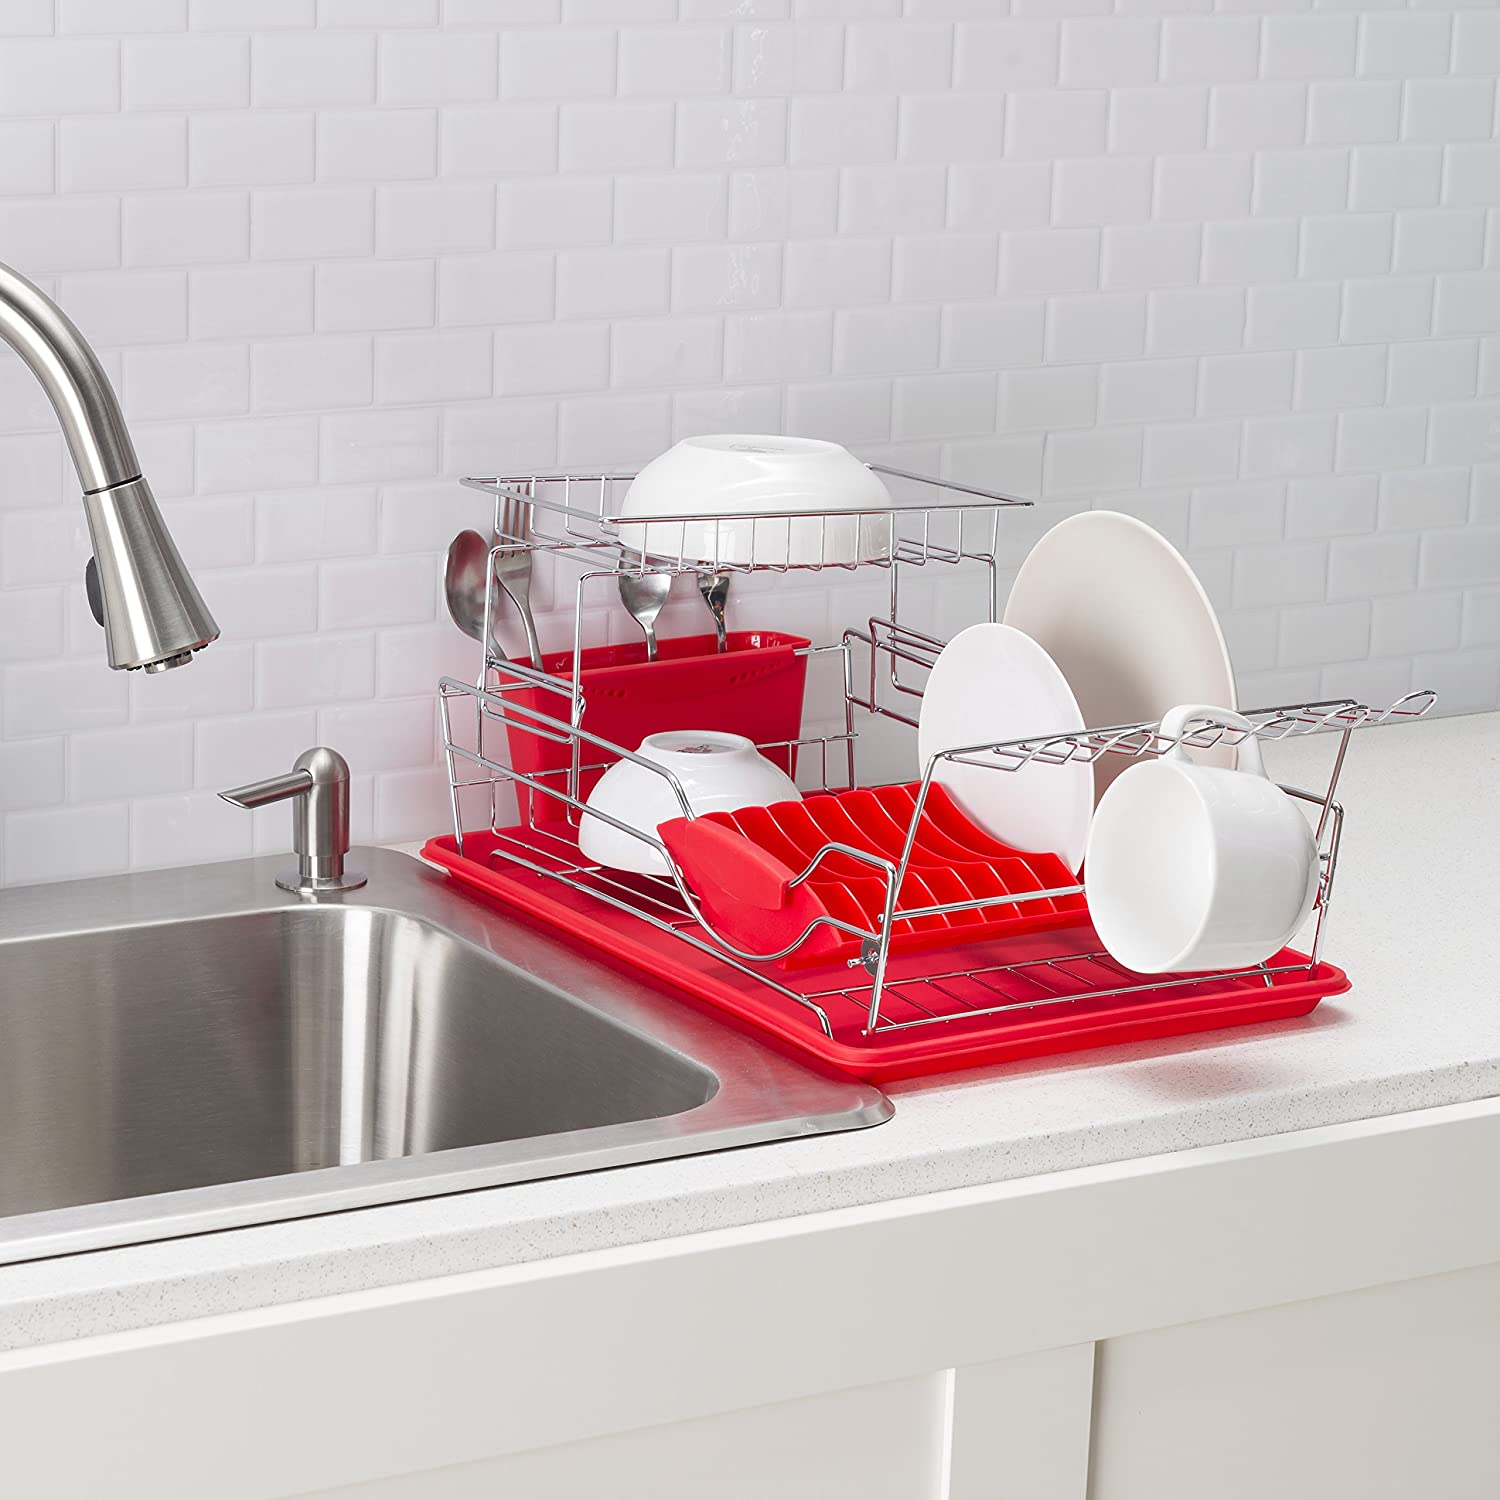 HDS Trading Corp DD44624 White Home Basics 2-Tier Stainless Steel Dish Rack with Drainboard Utensil Holder and Sturdy Slotted Dish Holder Drainer Side Mounted Mug Stand